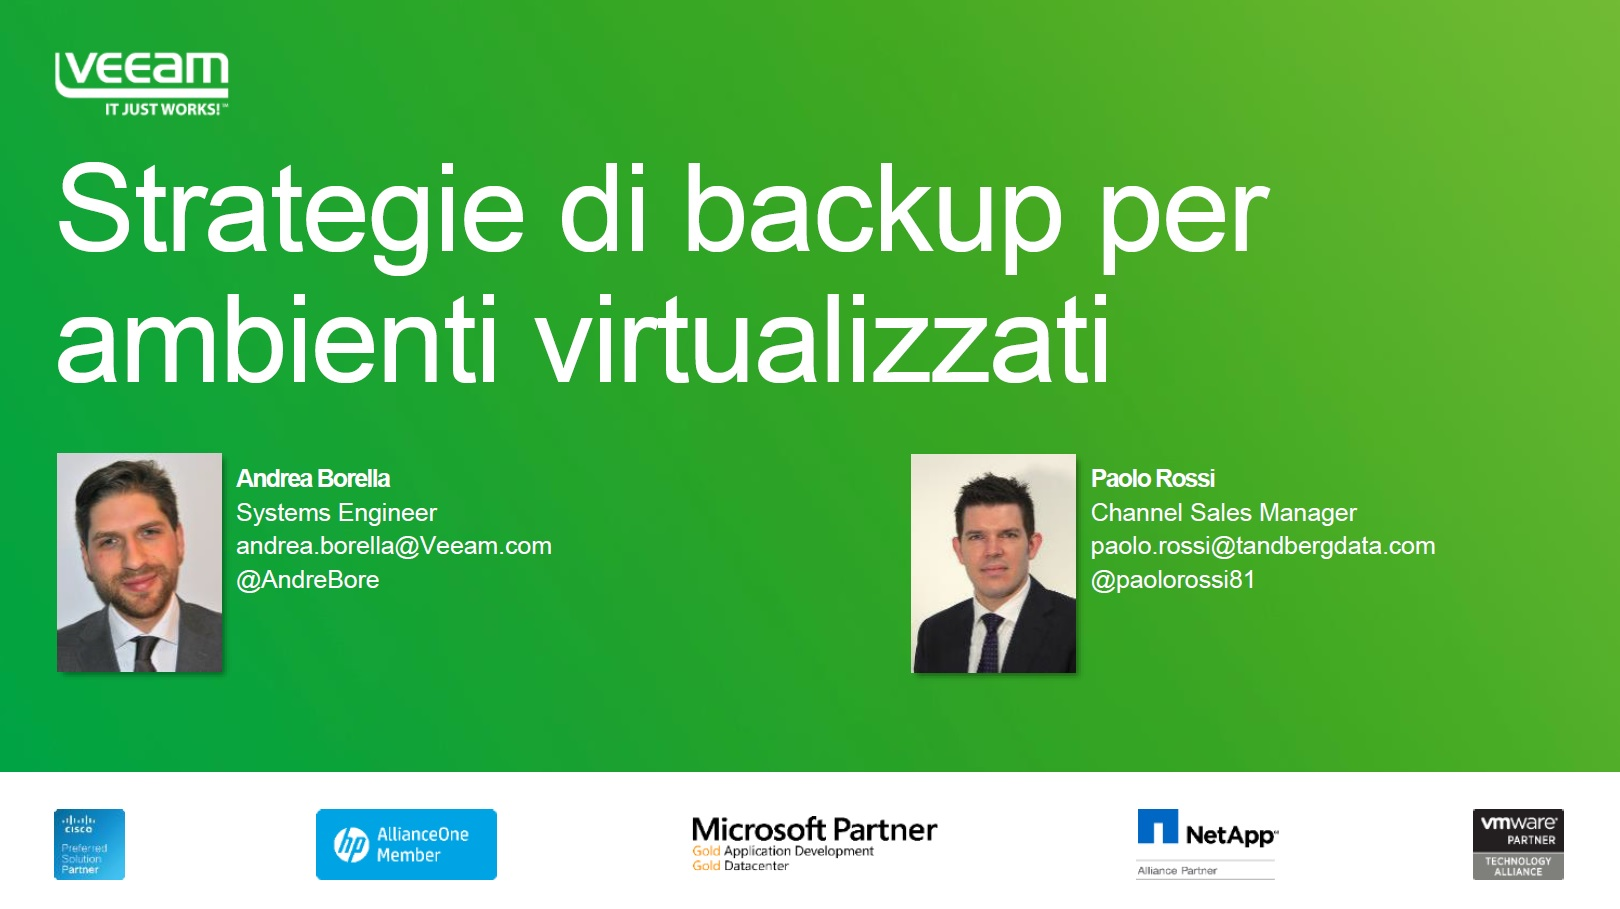 Strategie di backup per ambienti virtualizzati. Disco / Nastro / Cloud: quale strategia si adatta meglio alle vostre esigenze?